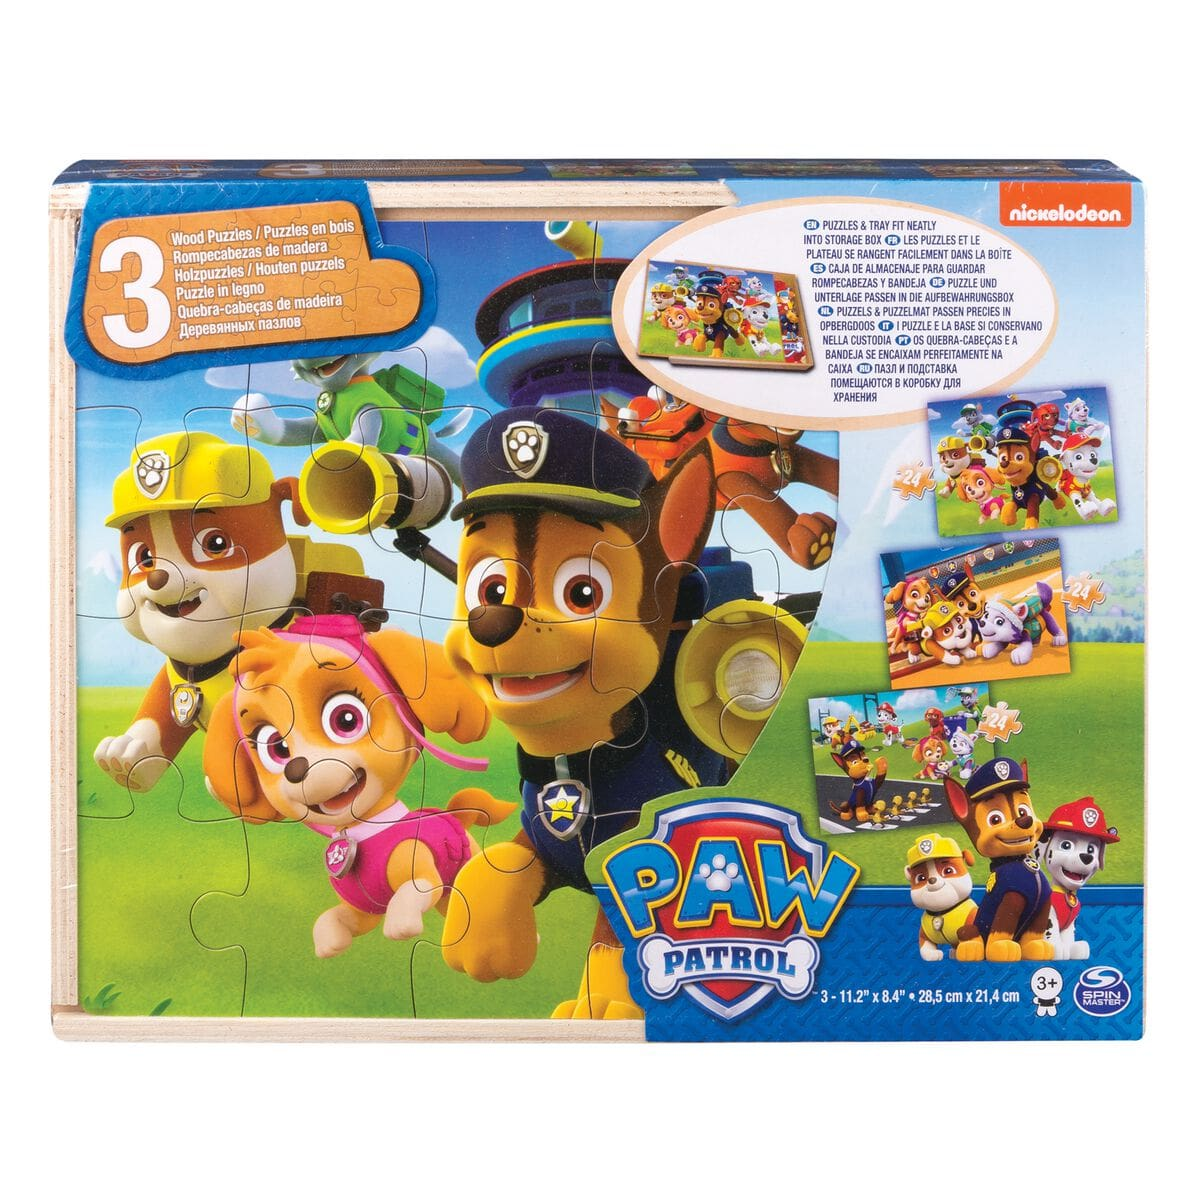 Spin Master Paw Patrol Holz Puzzle Puzzle